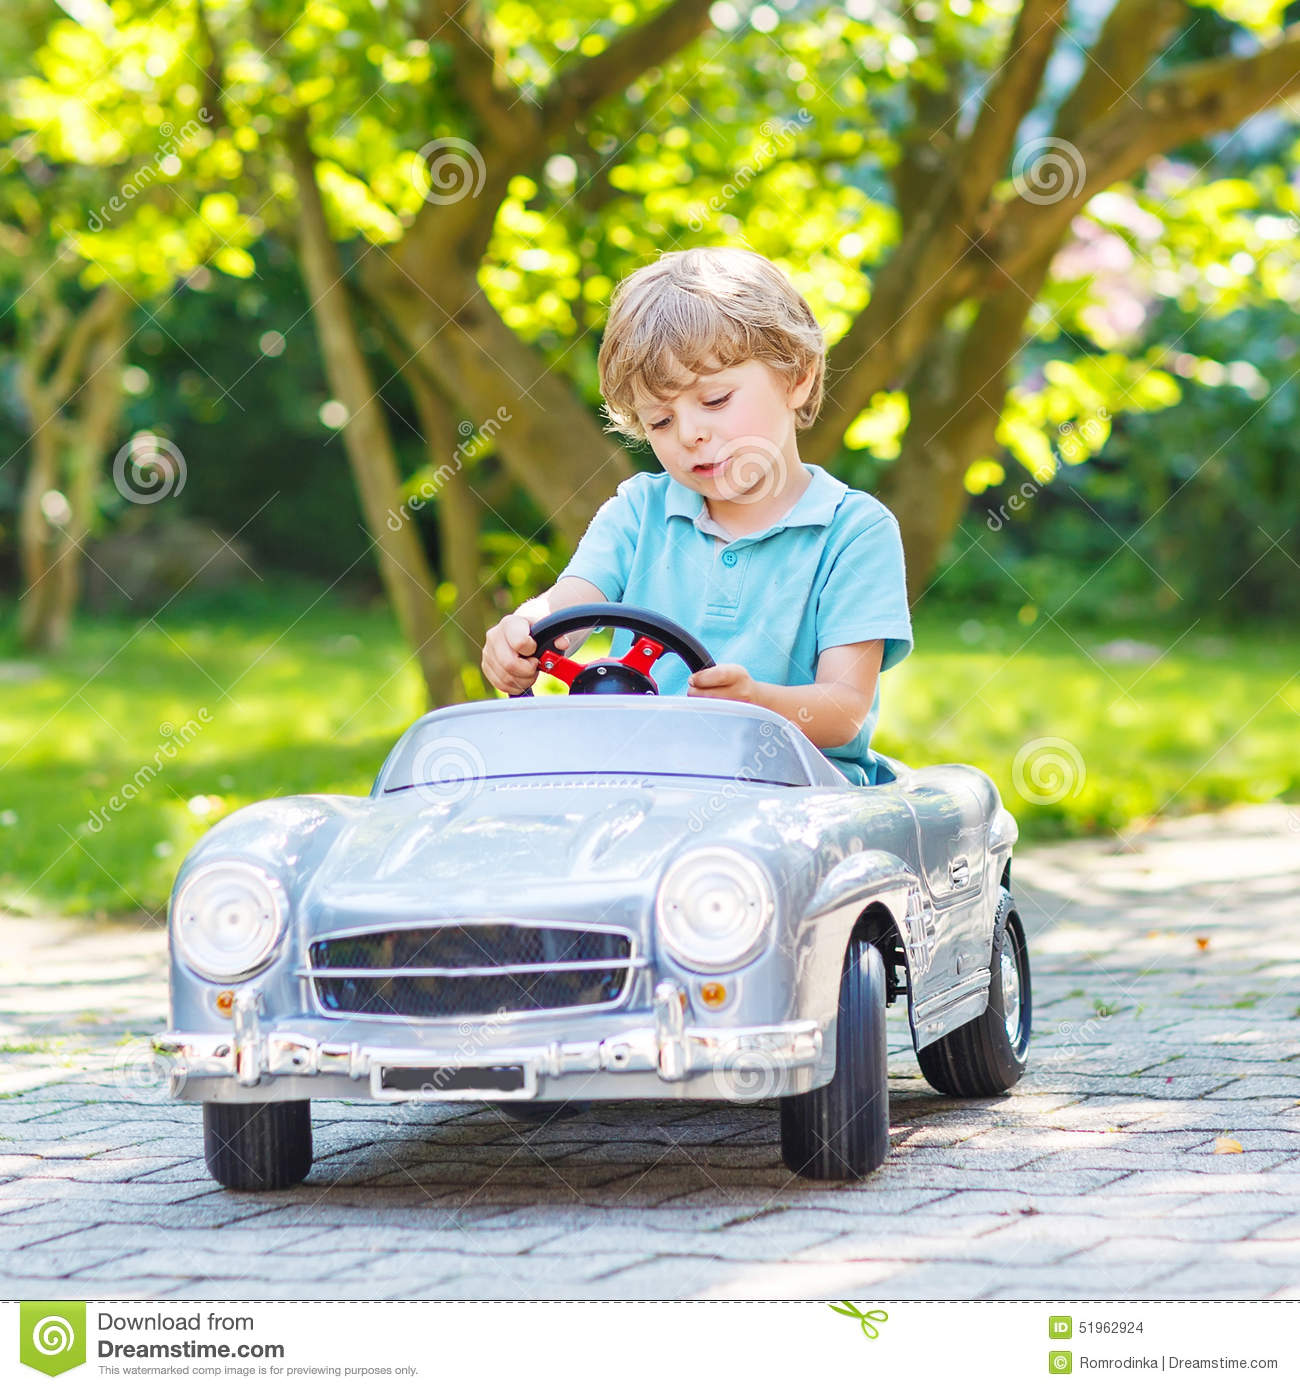 Unique Fun For Little Boys Toys : Little boy driving big toy old car outdoors stock photo